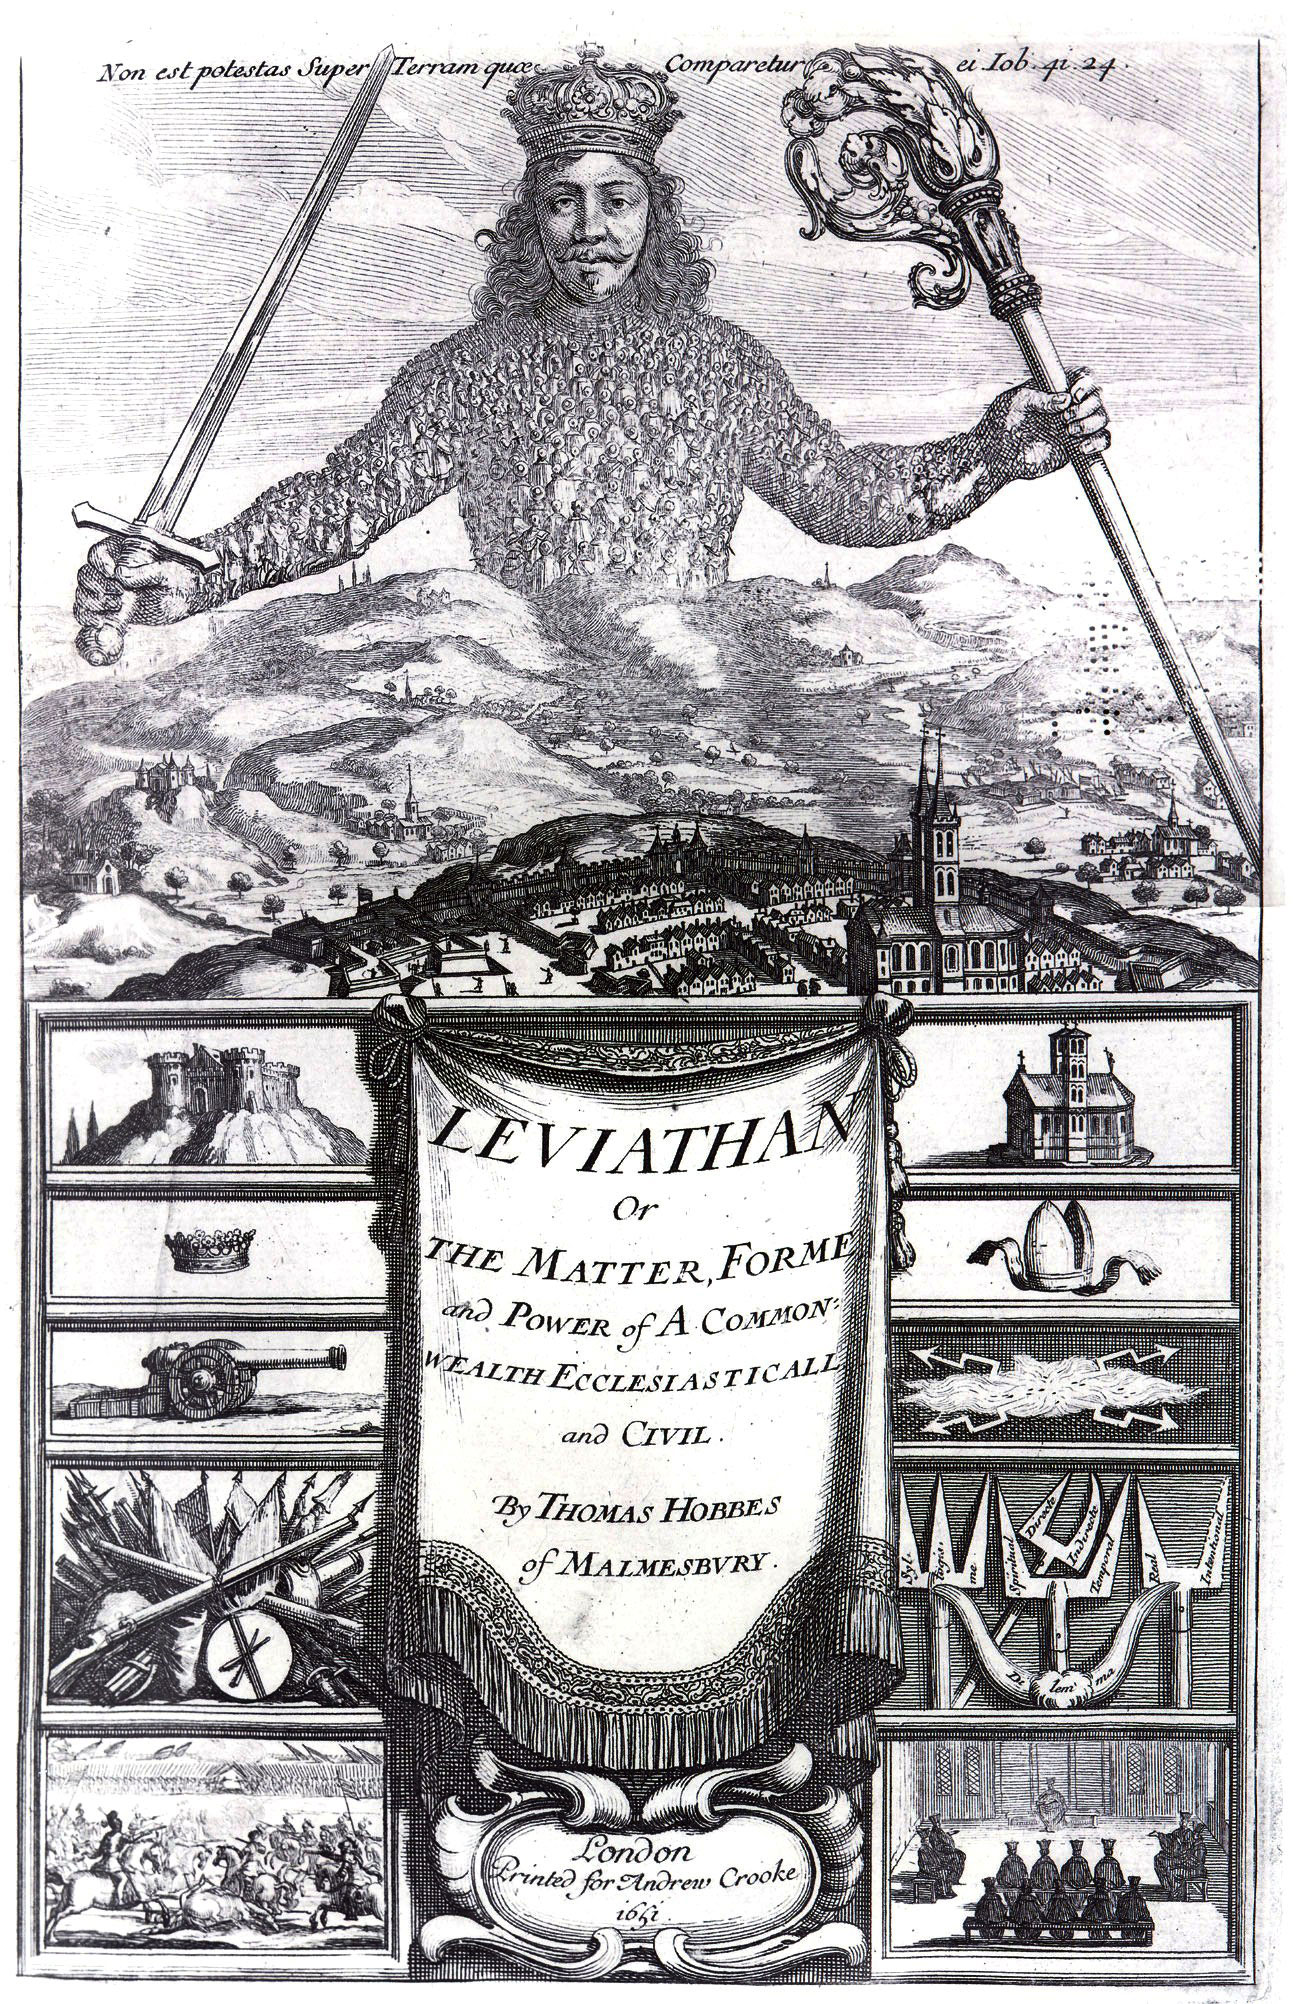 The frontispiece for Leviathan (1651) by Thomas Hobbes, etching by Abraham Bosse. From Body of Art